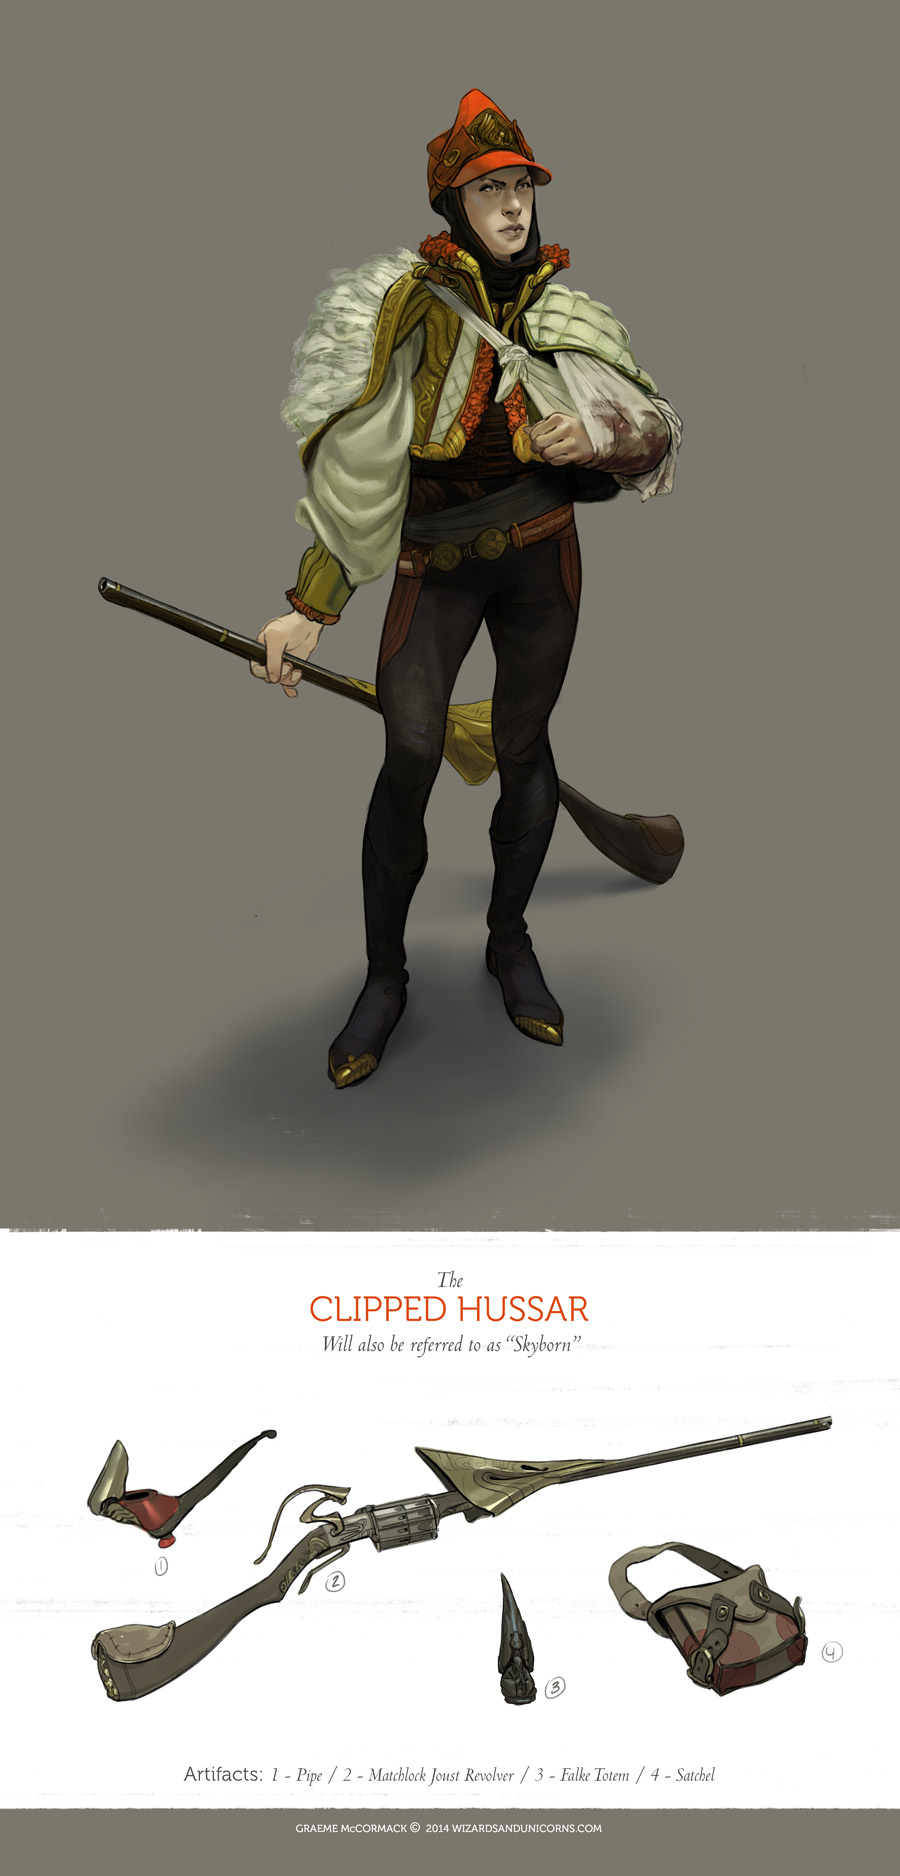 The Clipped Hussar